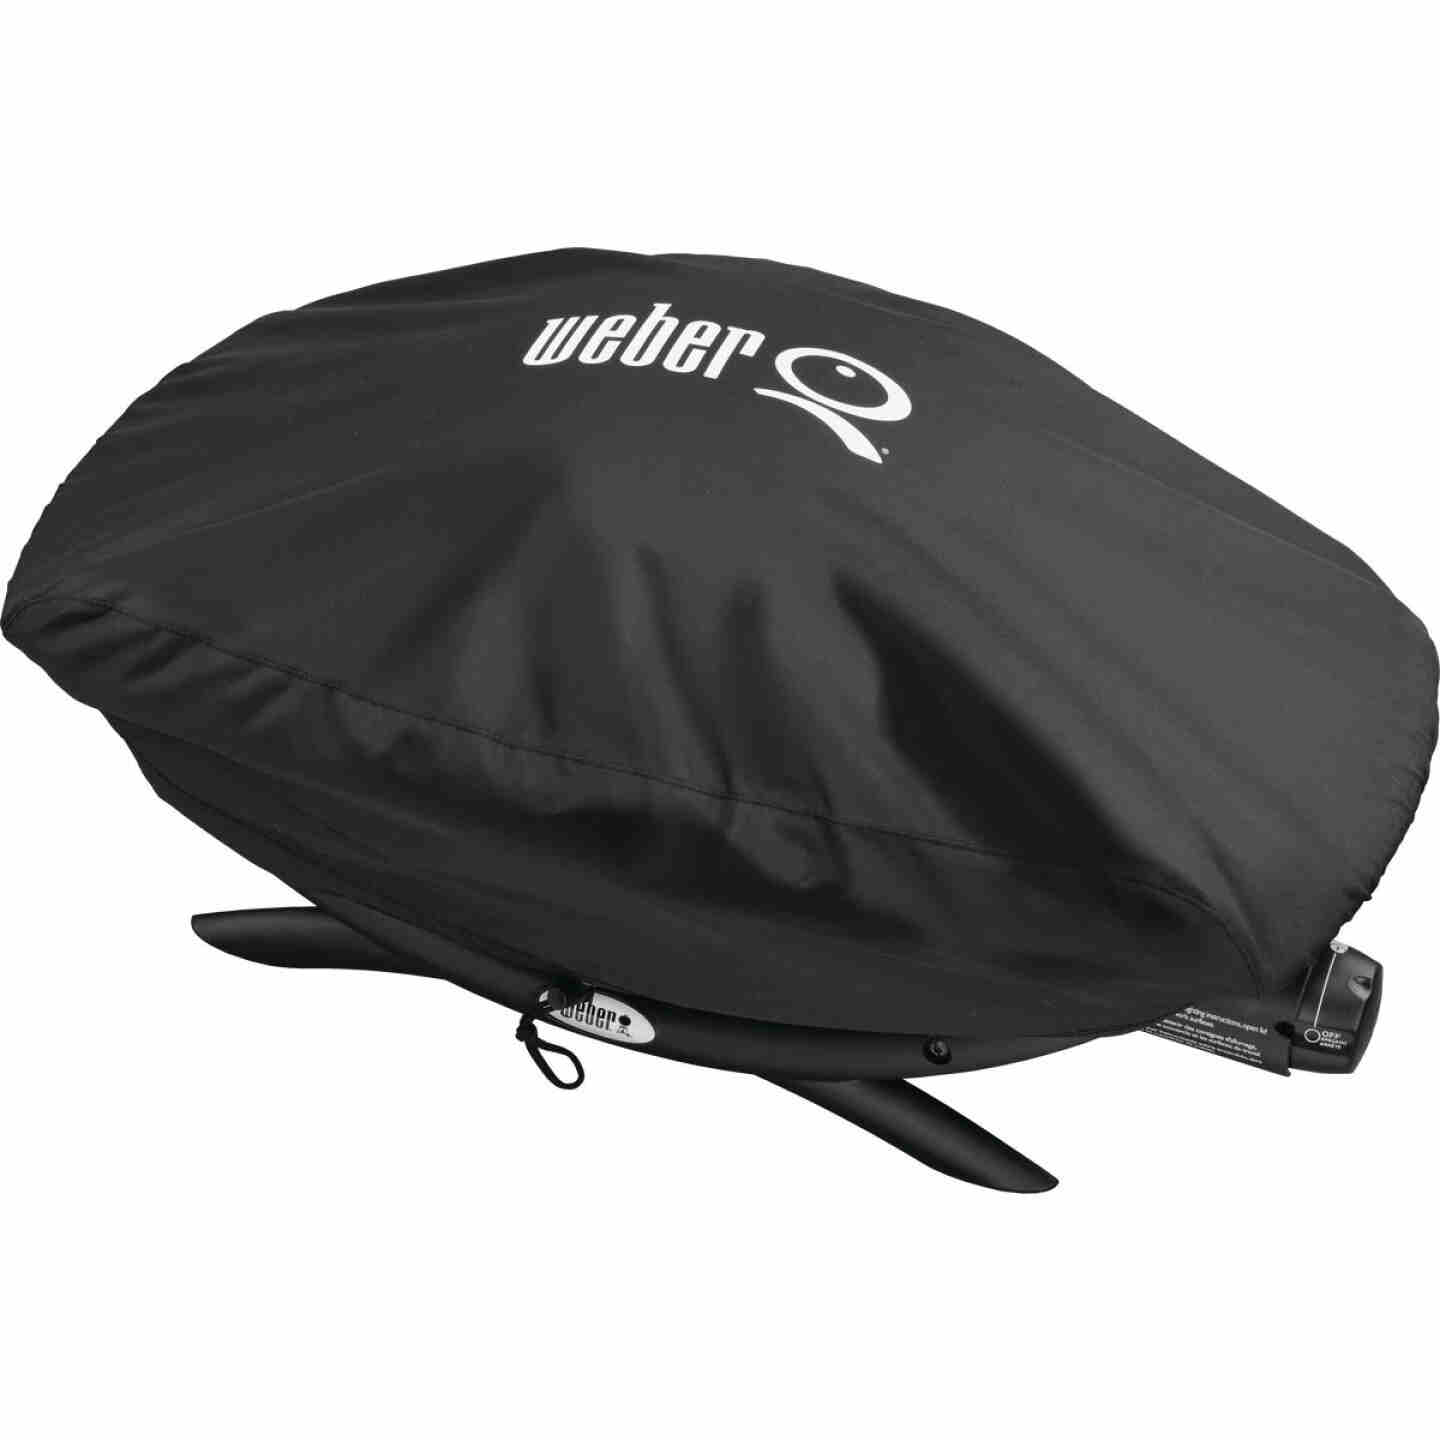 Weber Q 200/2000 21 In. Black Vinyl Grill Cover Image 2